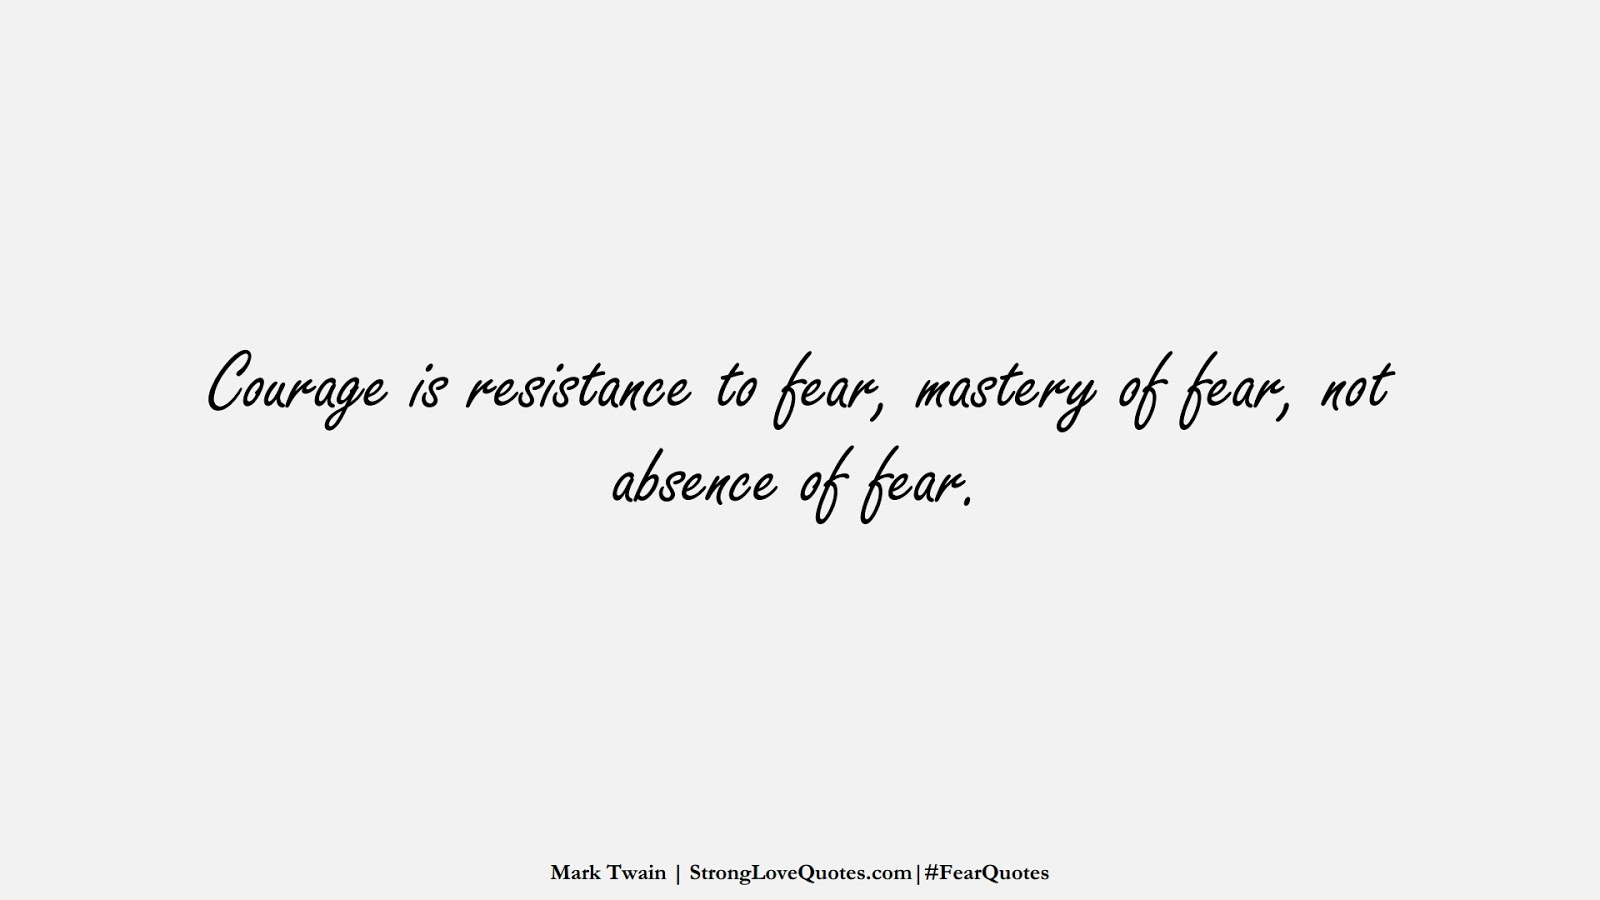 Courage is resistance to fear, mastery of fear, not absence of fear. (Mark Twain);  #FearQuotes